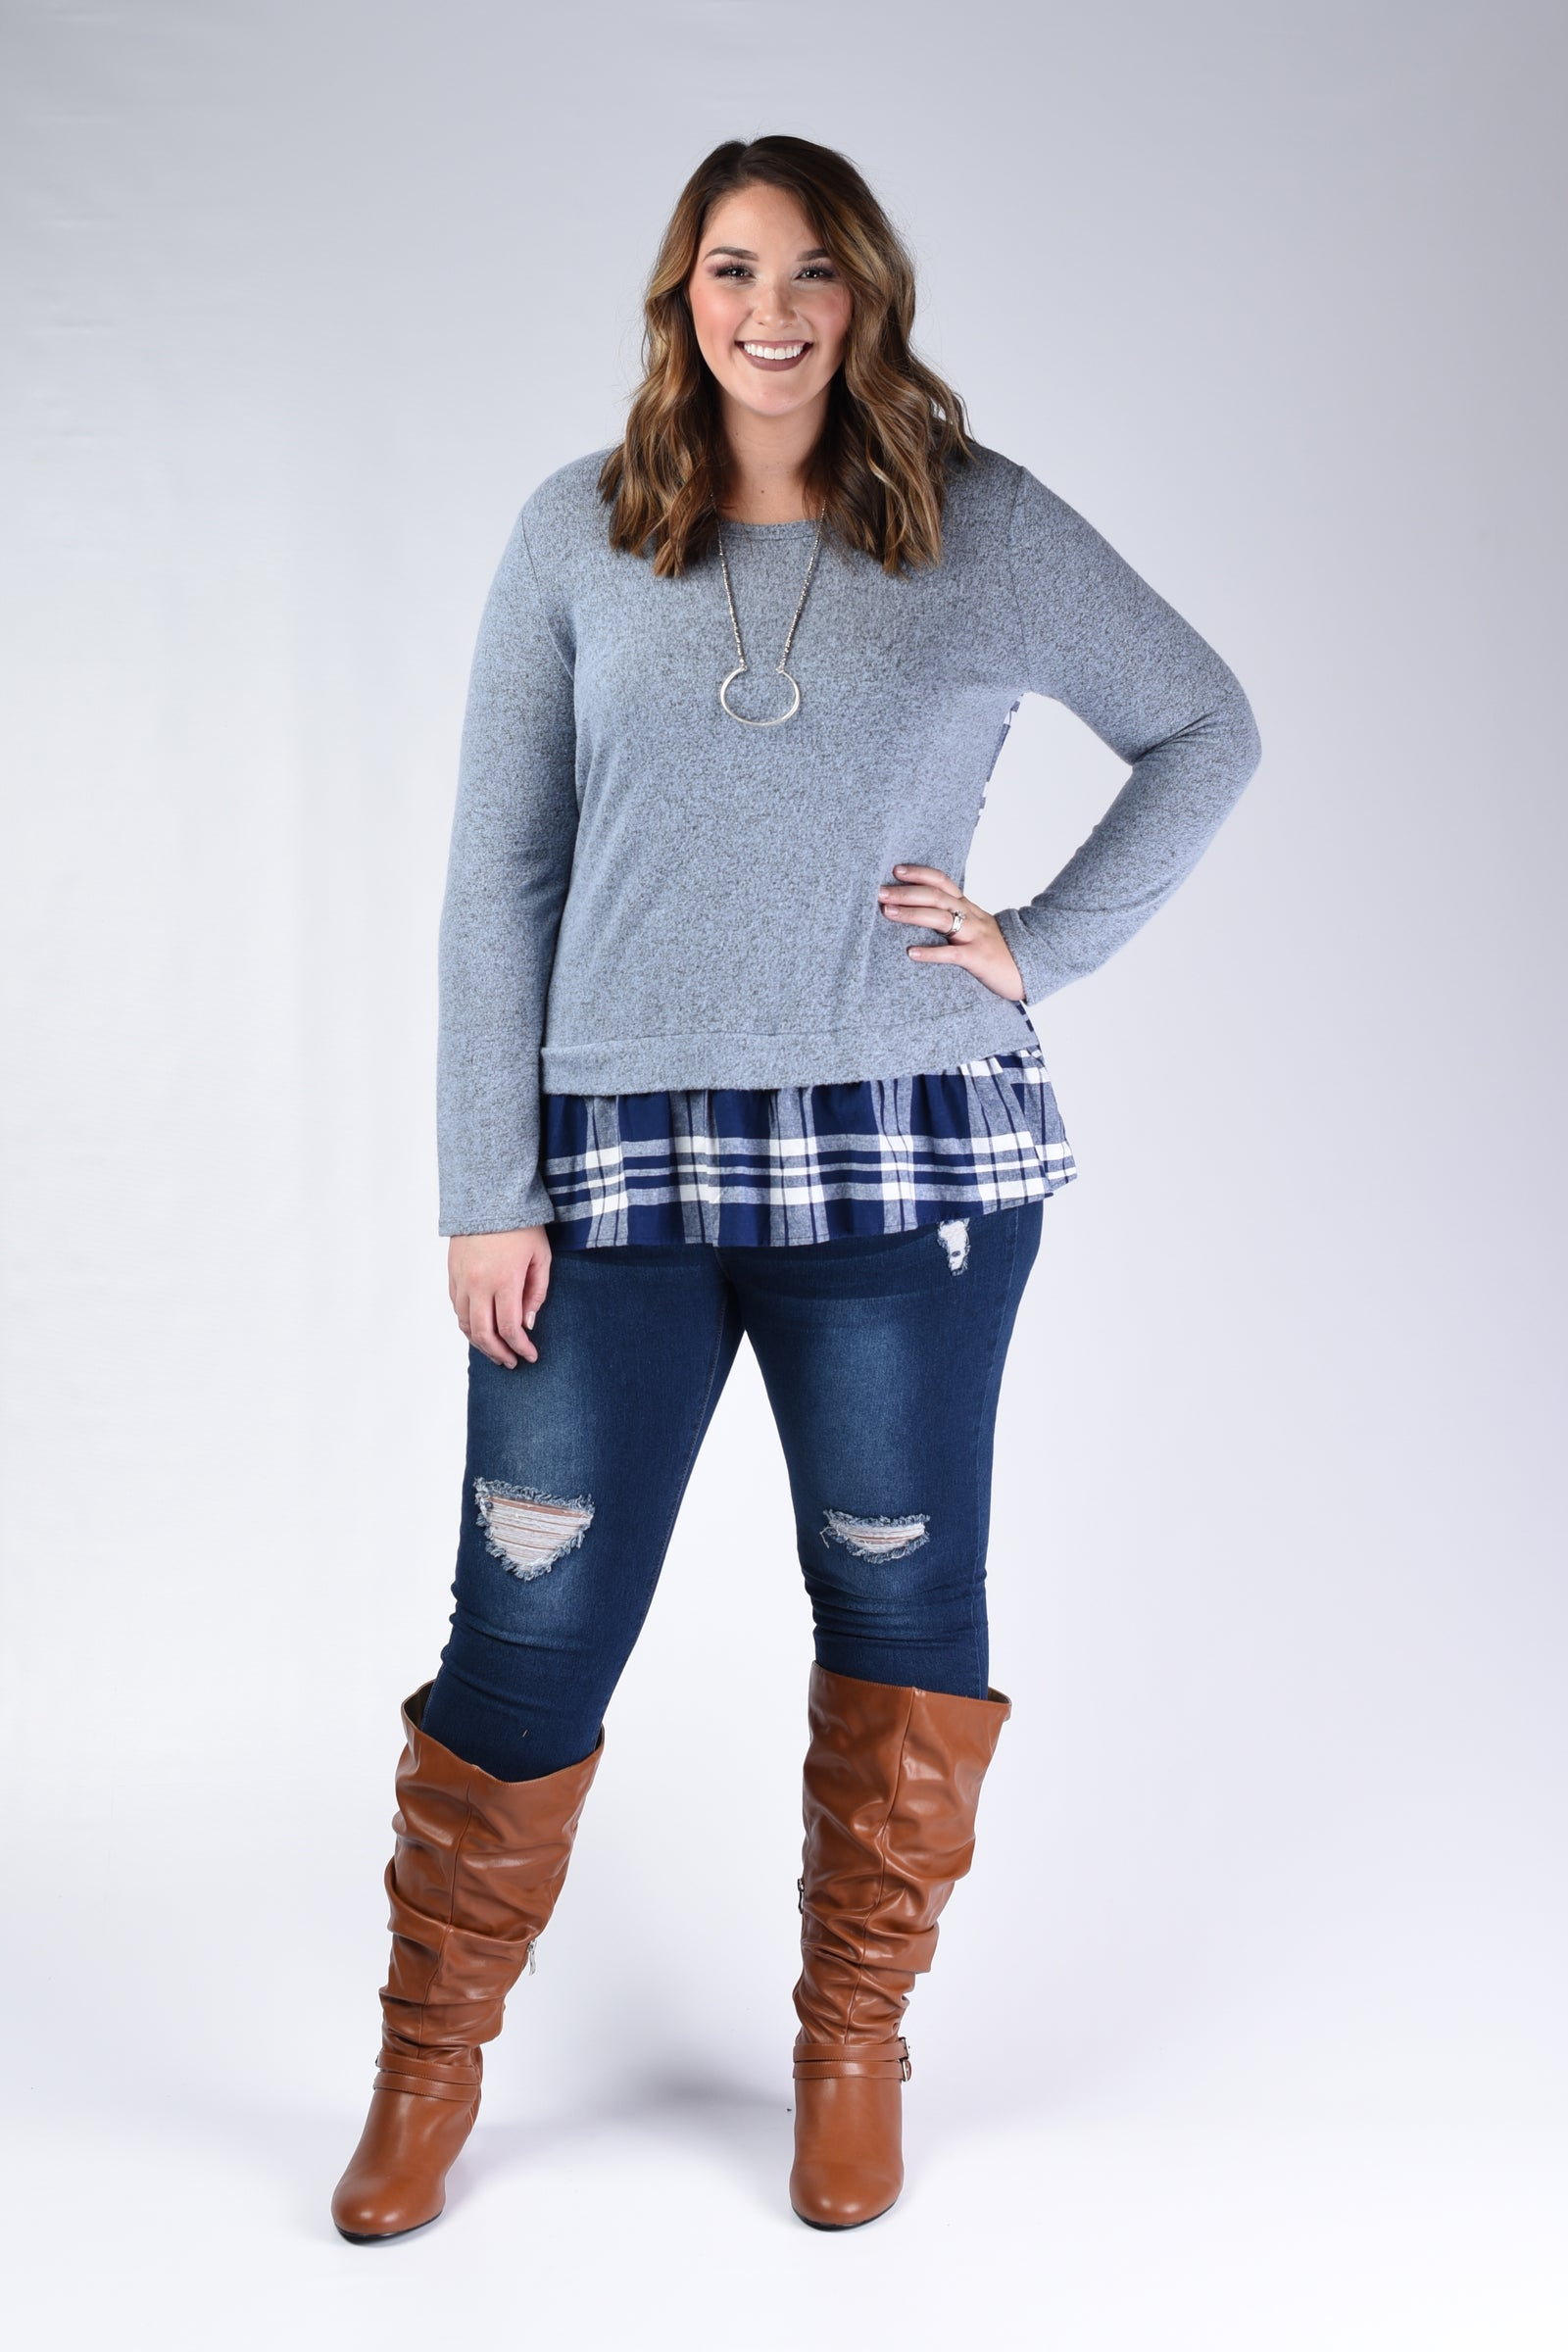 Blue & Plaid Top - www.mycurvystore.com - Curvy Boutique - Plus Size